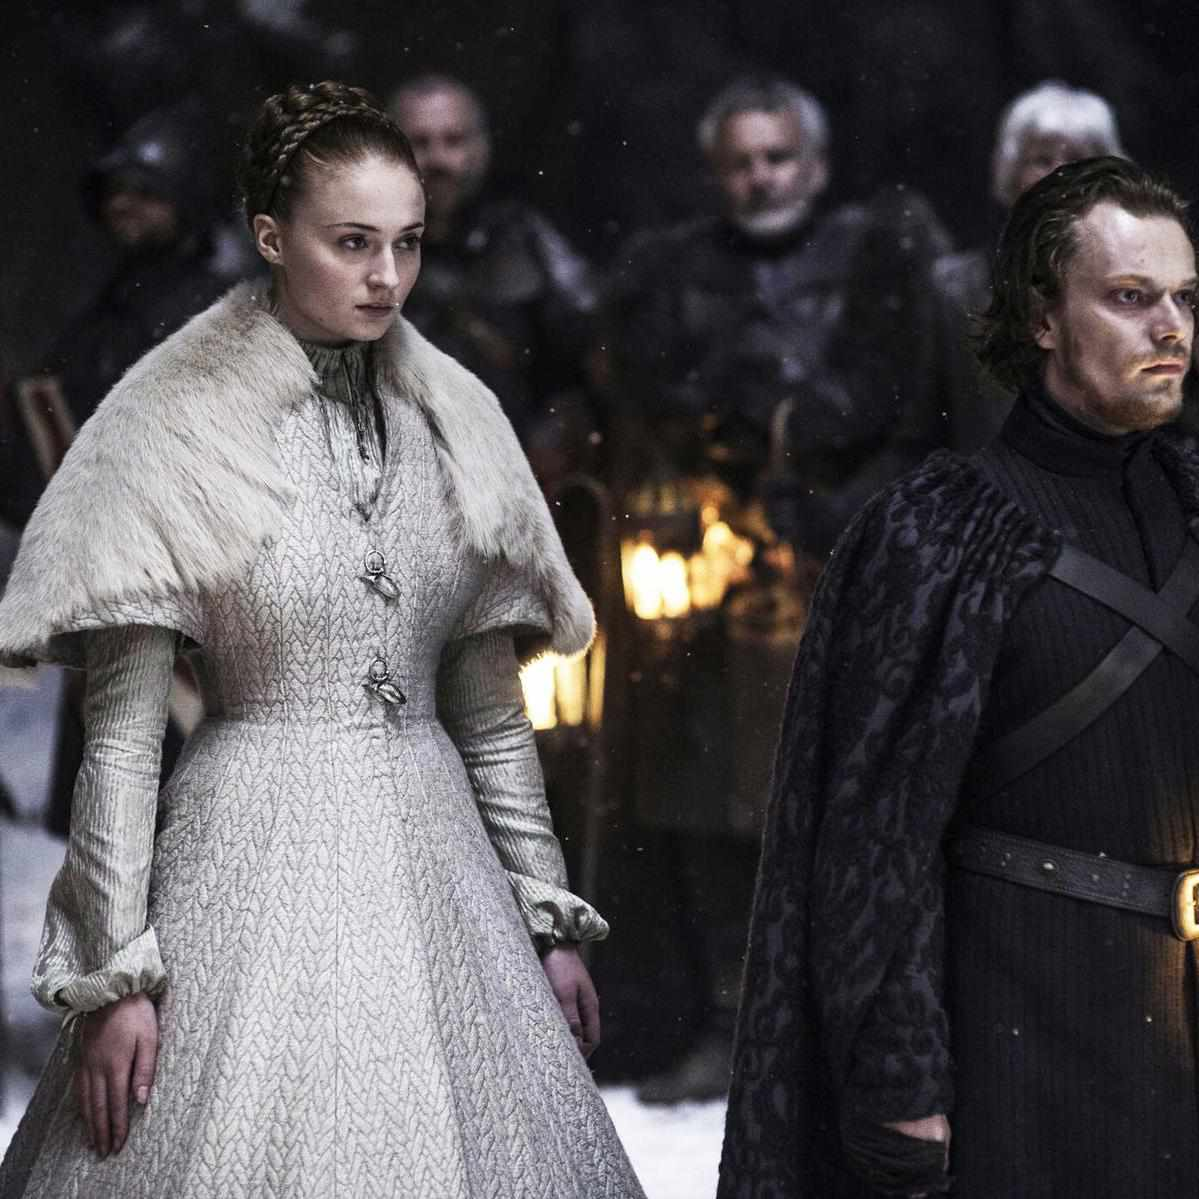 Game Of Thrones Wedding.The Ultimate Game Of Thrones Wedding Timeline